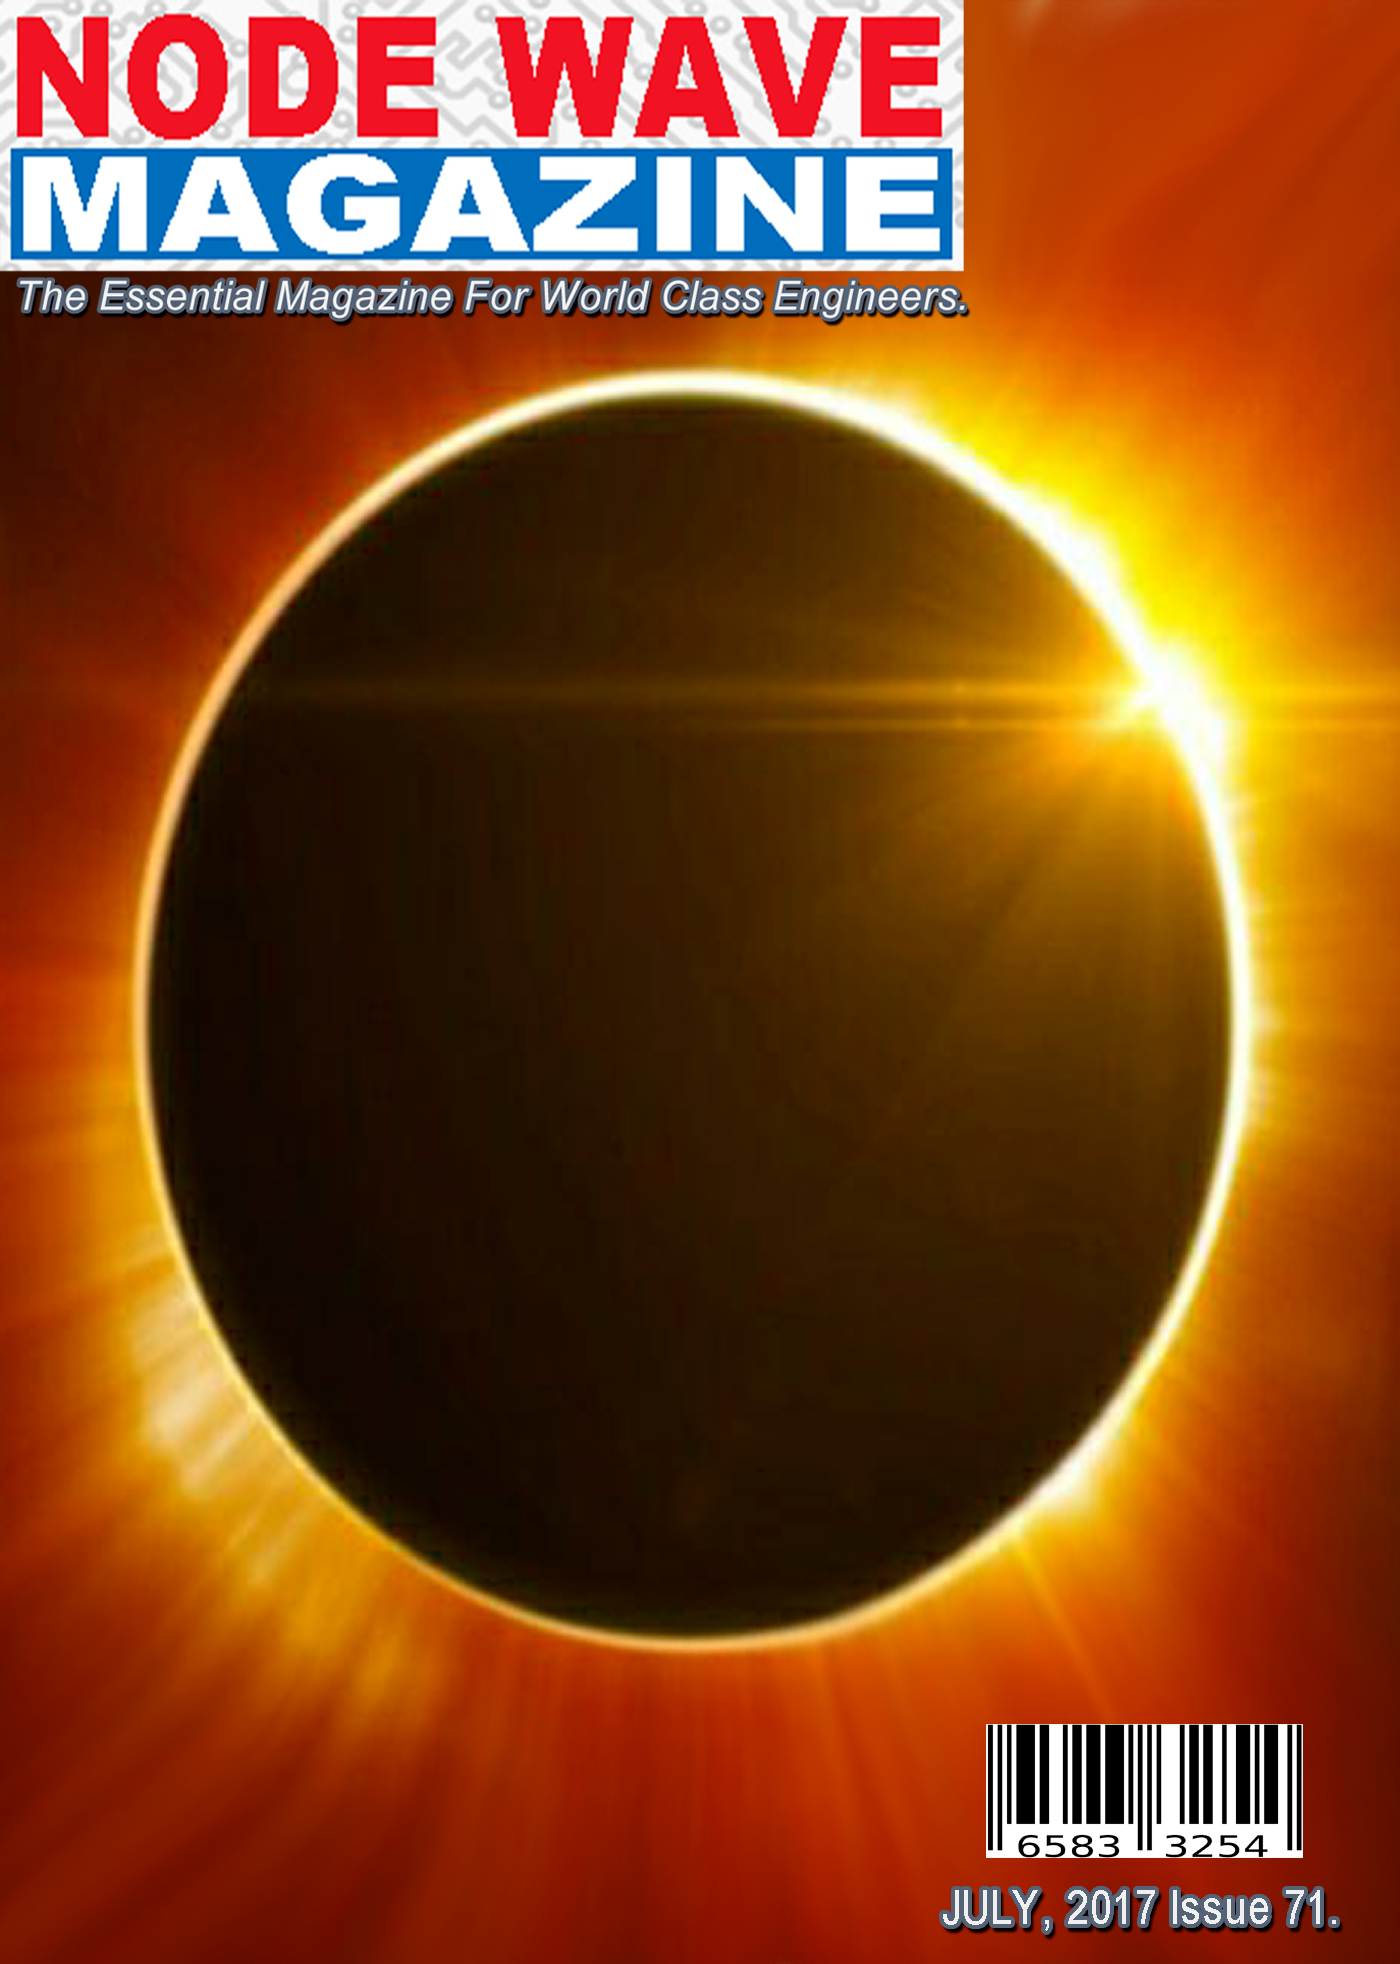 NWM COVER ISSUE 71.10